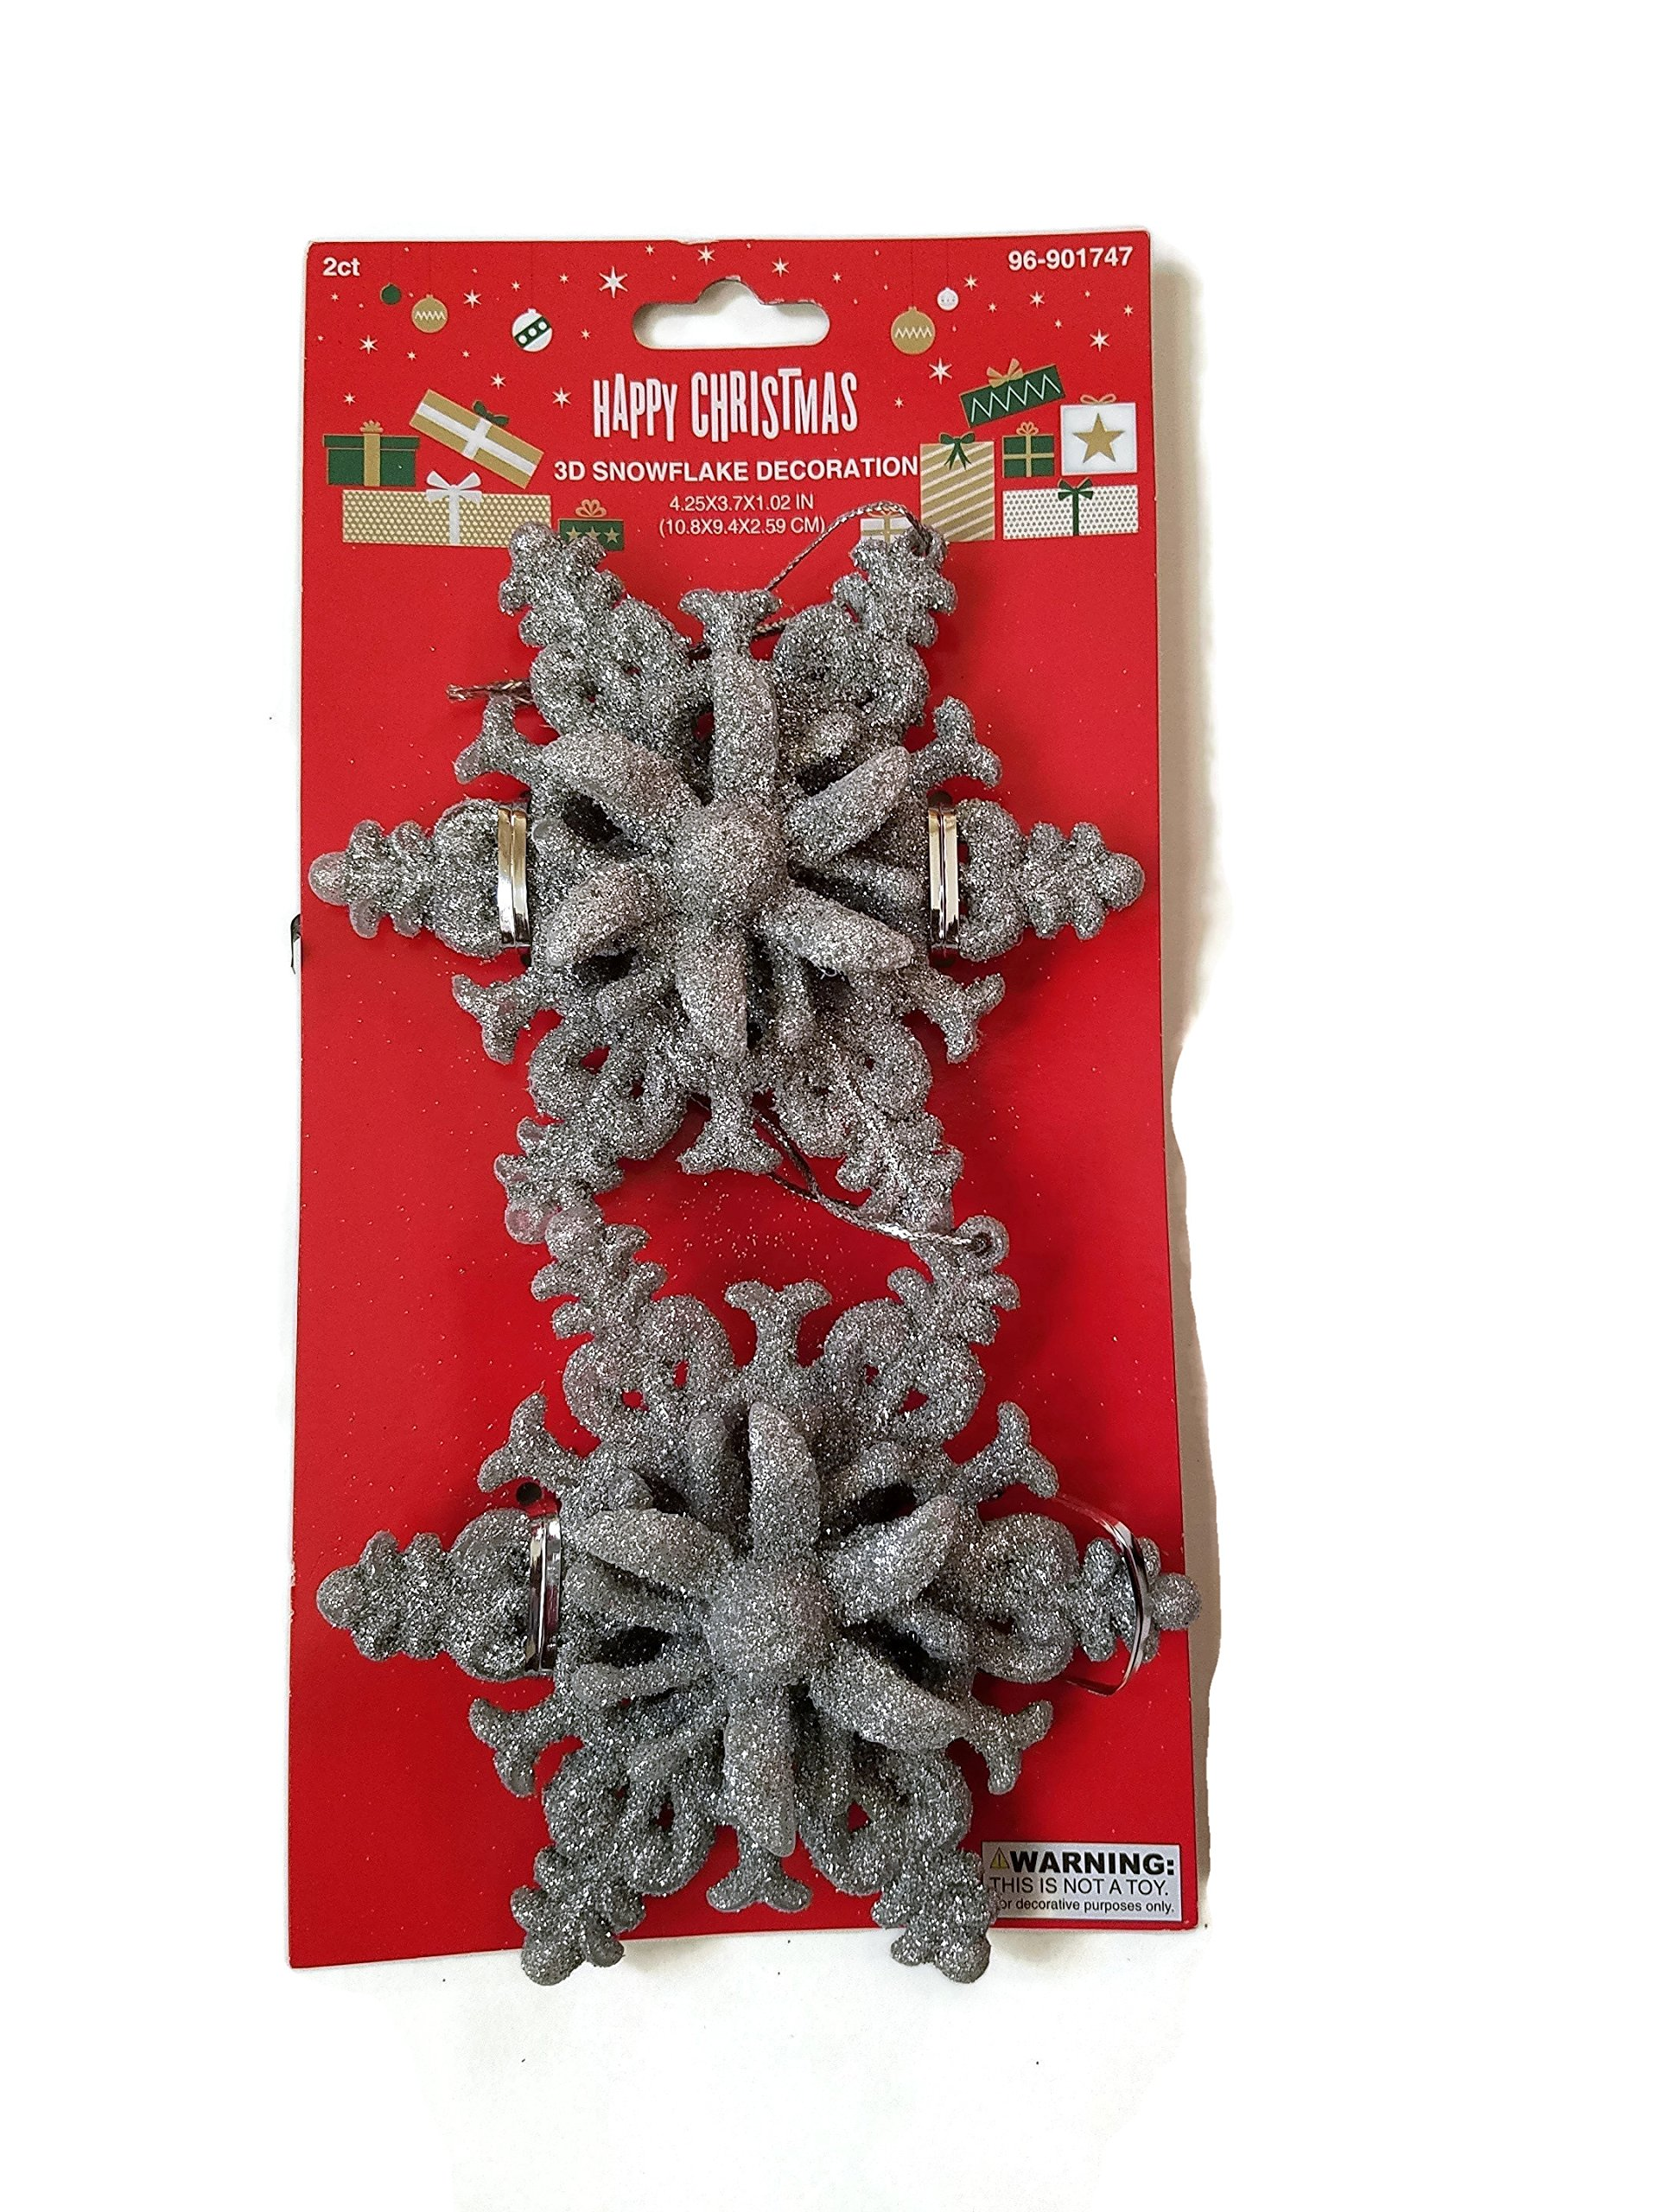 Set of Seven 2 Pack Decorative Silver Glitter Snow Flake Ornaments (14 Total)